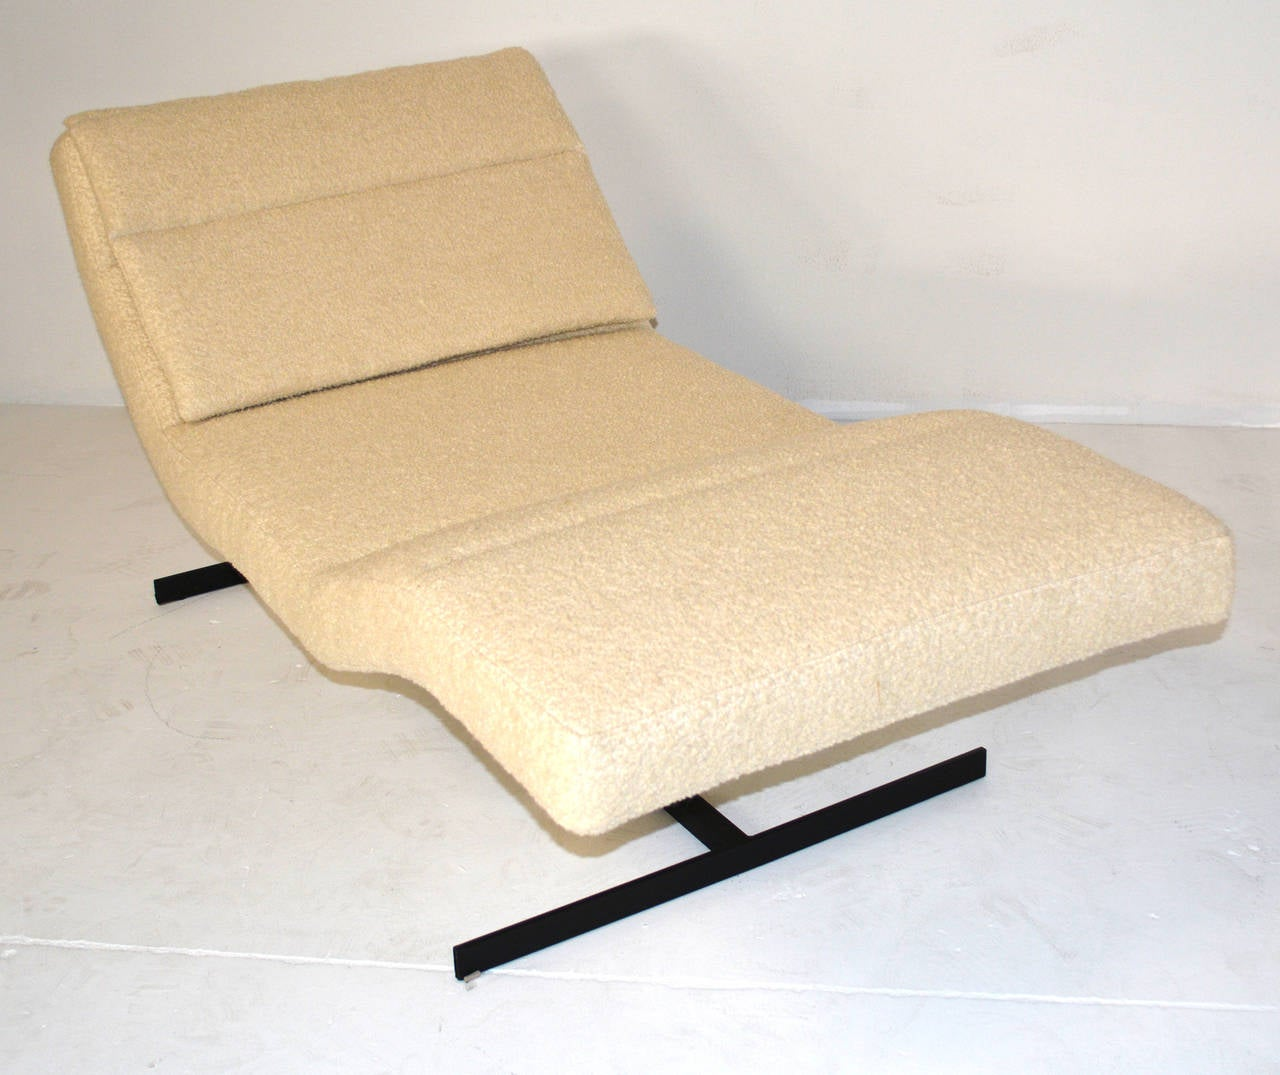 Saporiti chaise longue at 1stdibs for 1 zitsbank met chaise longue